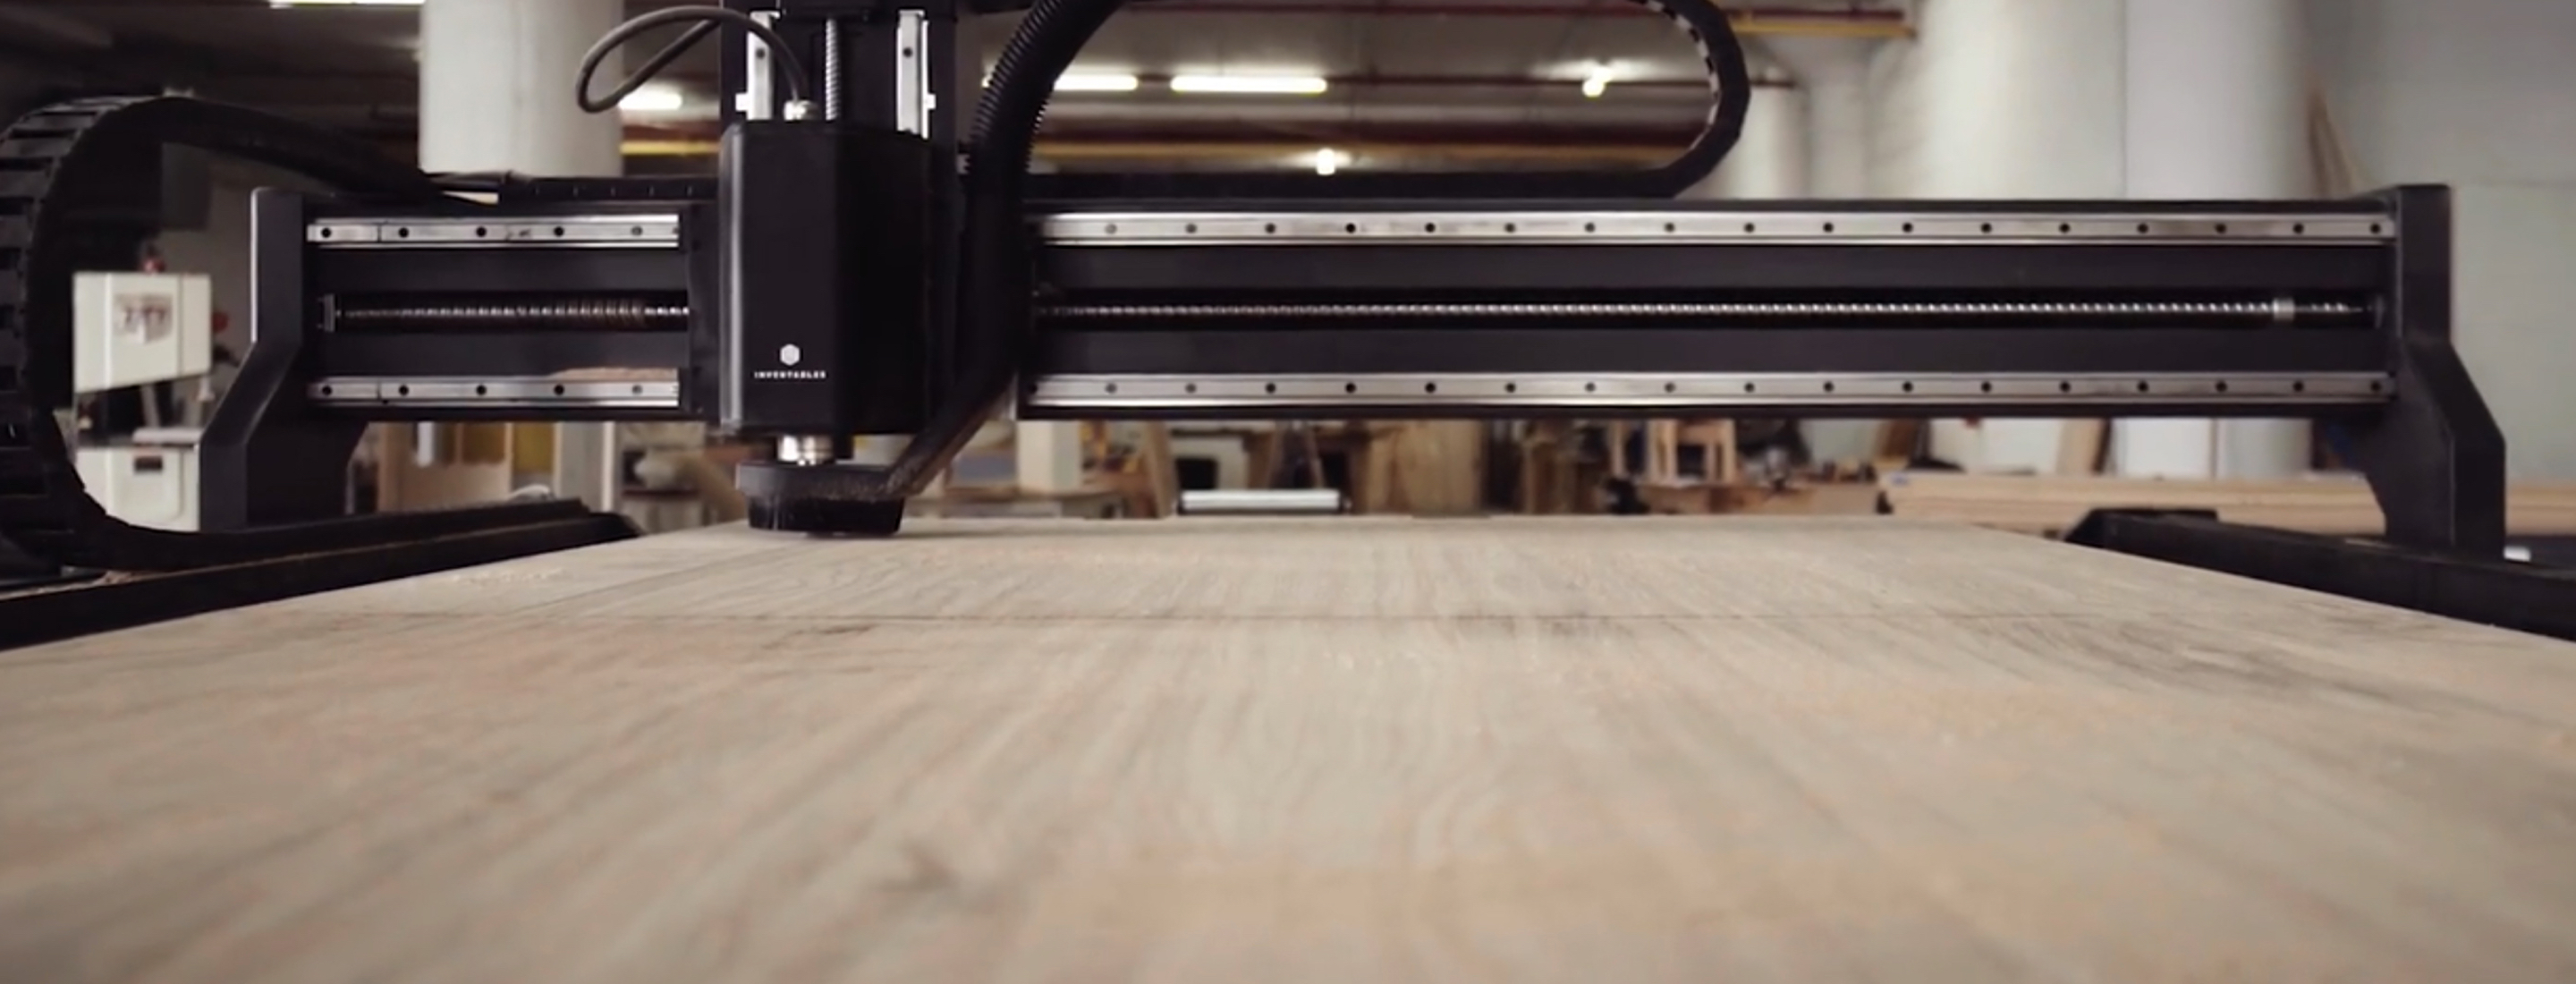 World's Easiest CNC System for Machining | Inventables